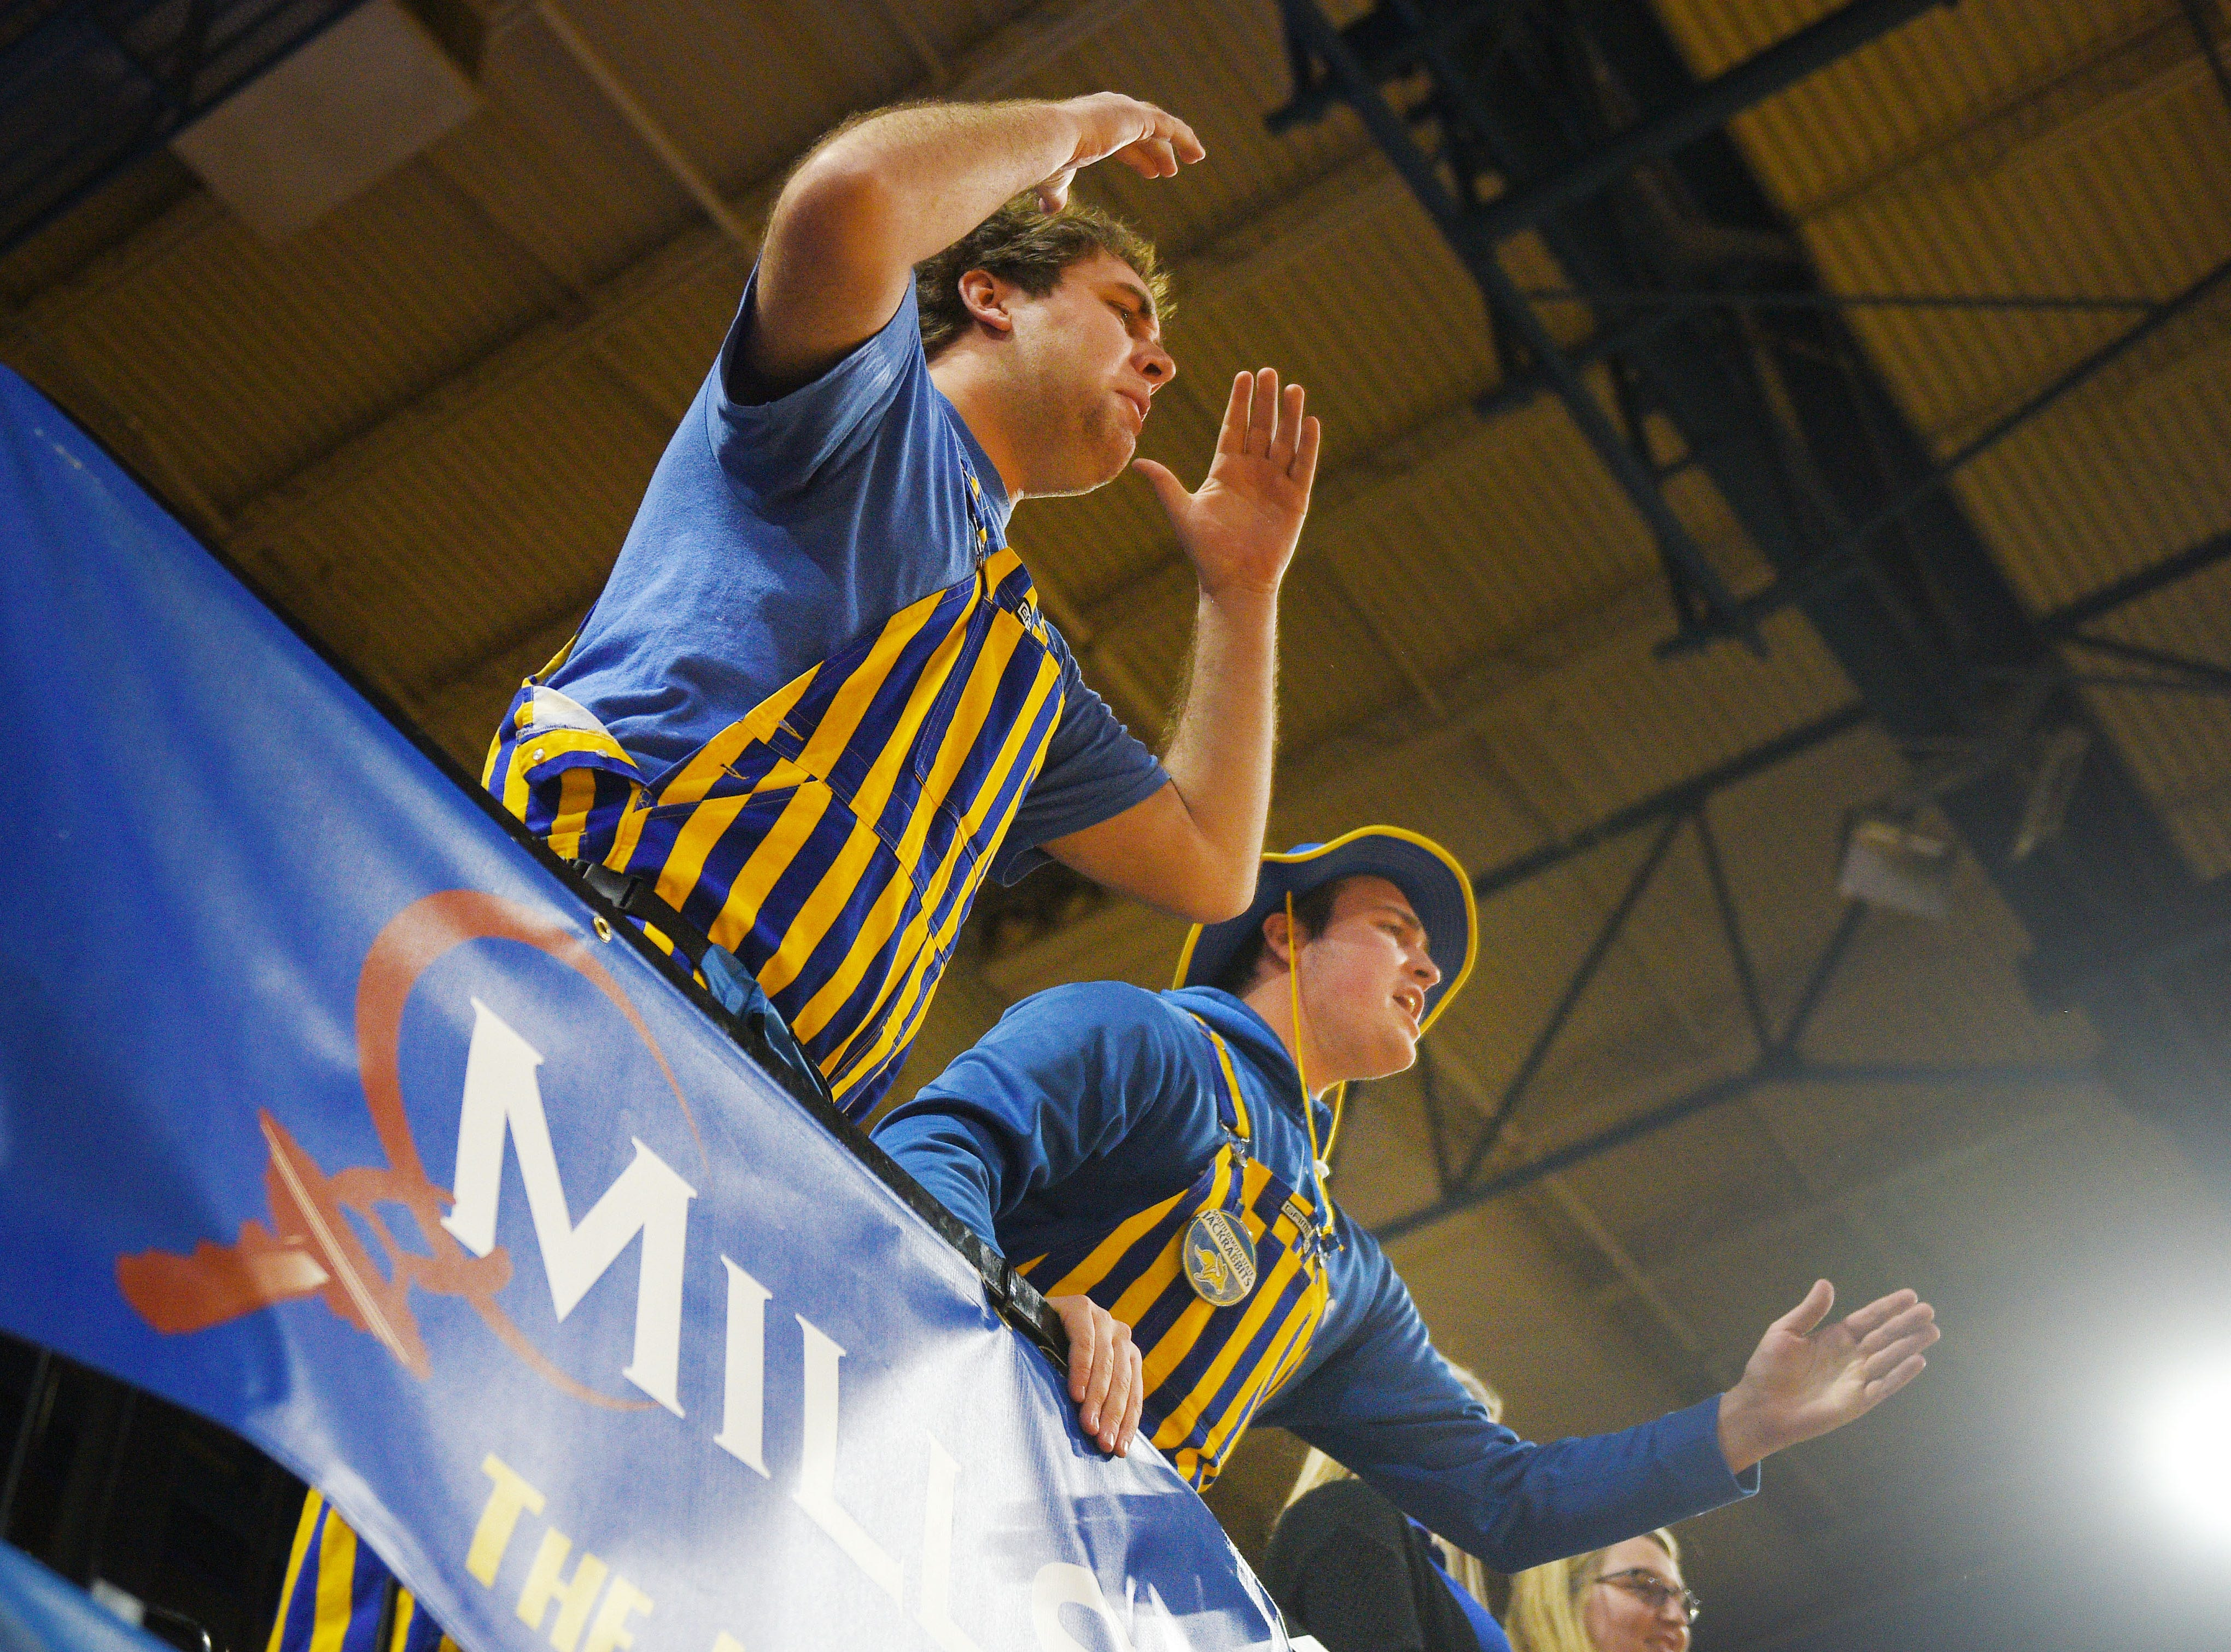 SDSU fans react to a call during the game against Omaha Saturday, Jan. 26, at Frost Arena in Brookings.